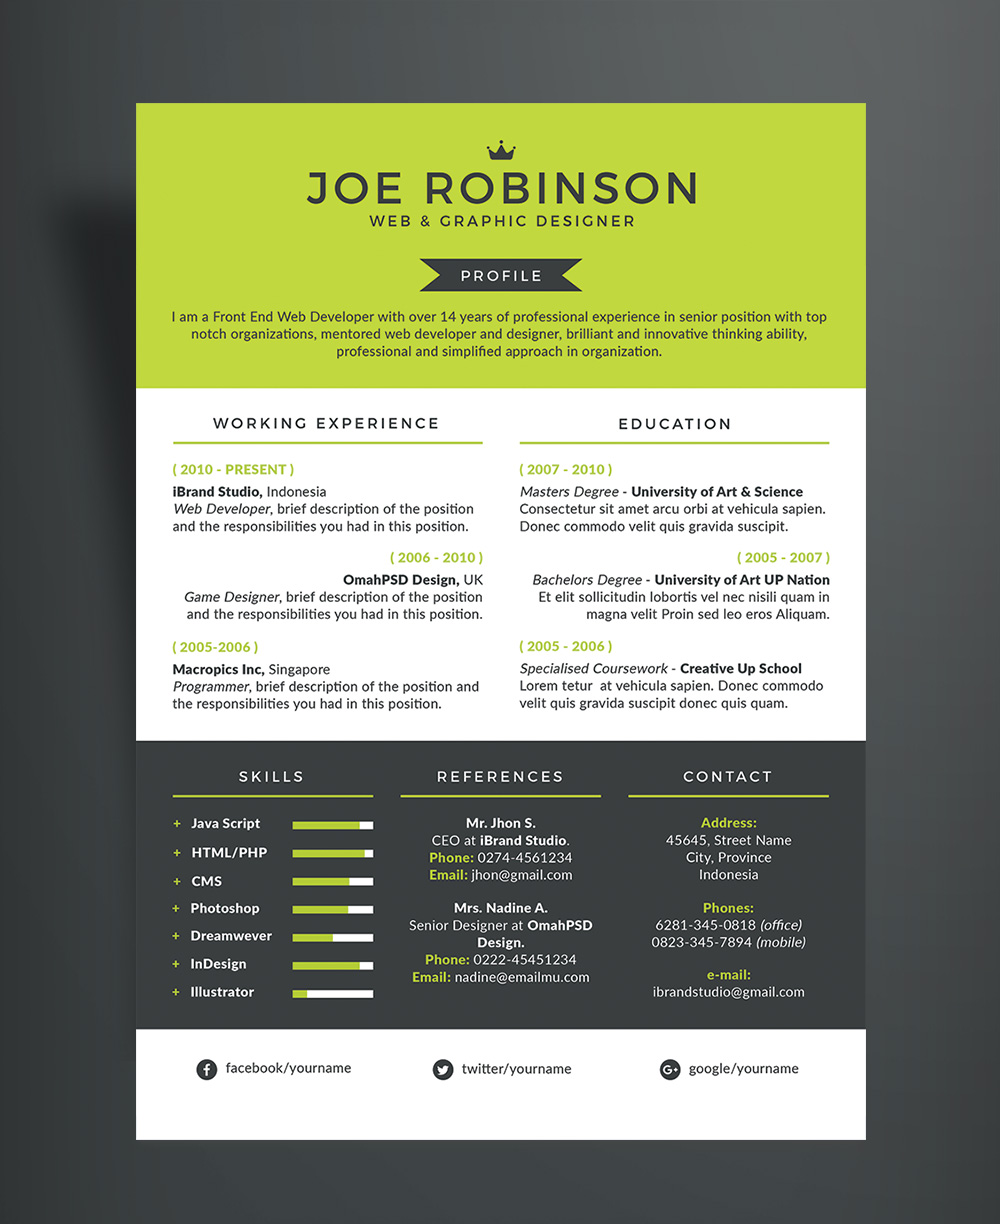 Elegant & Professional Resume (CV) Design Template in 3 Different Colors PSD File (2)